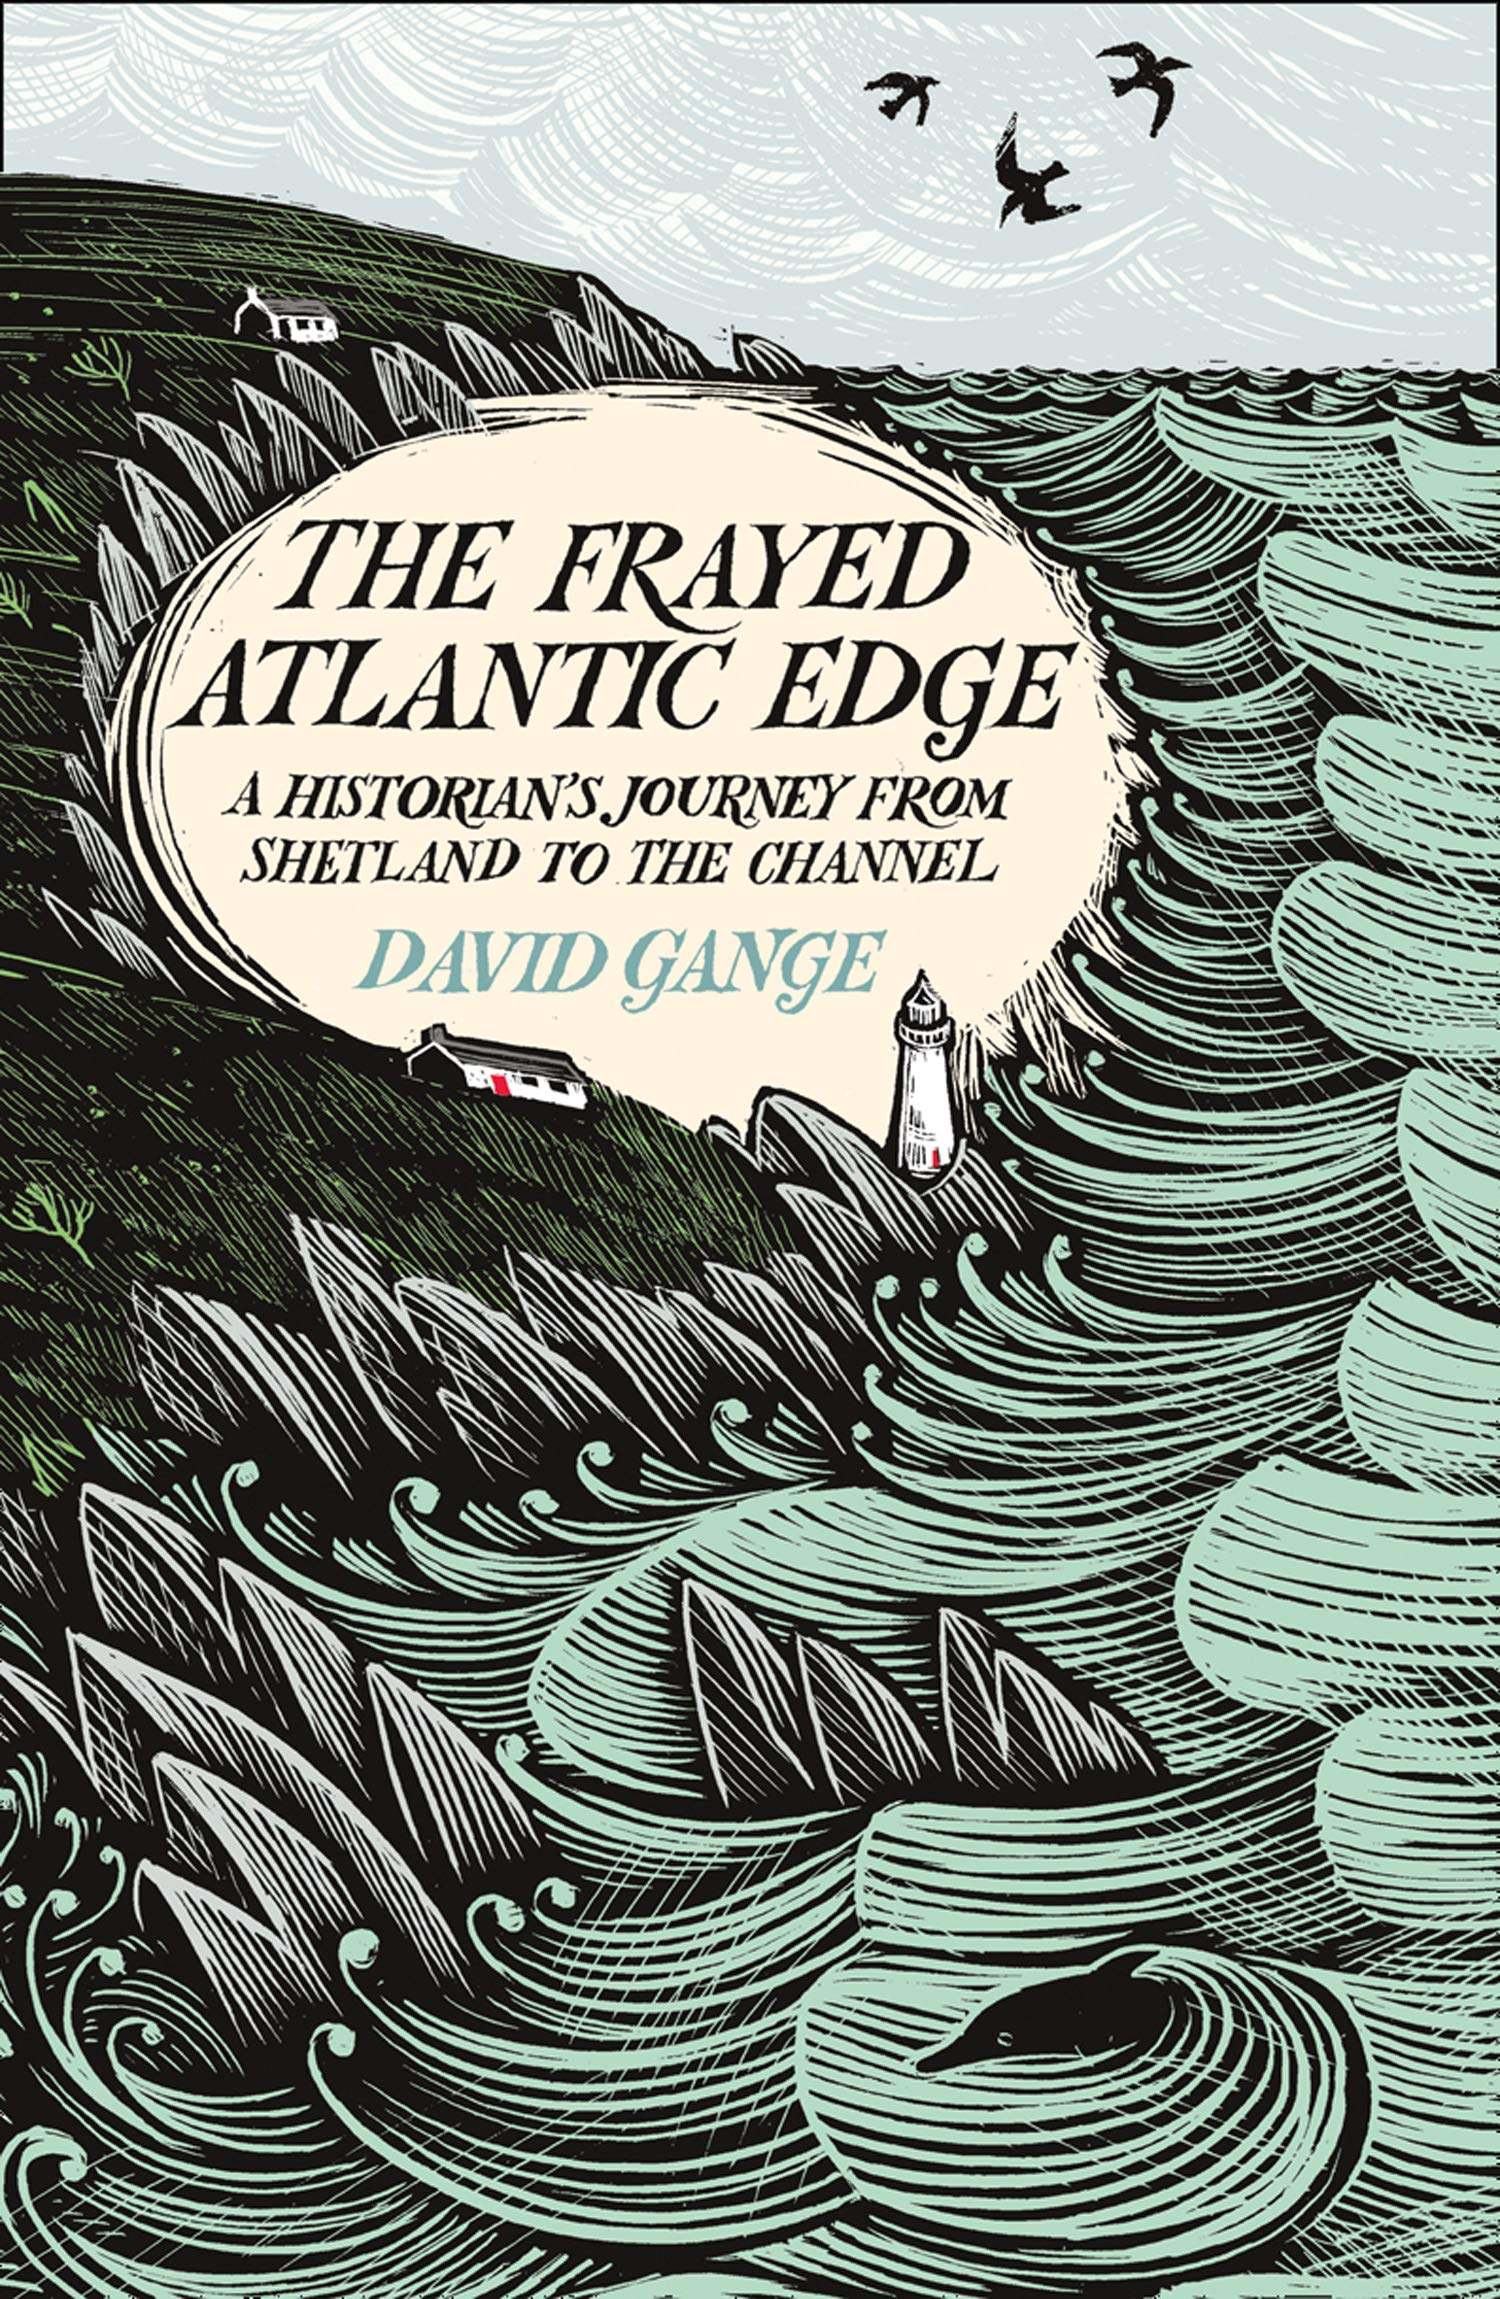 The Frayed Atlantic Edge | David Gange 9780008225117 David Gange Collins   Landeninformatie, Watersportboeken Britse Eilanden, Zeeën en oceanen